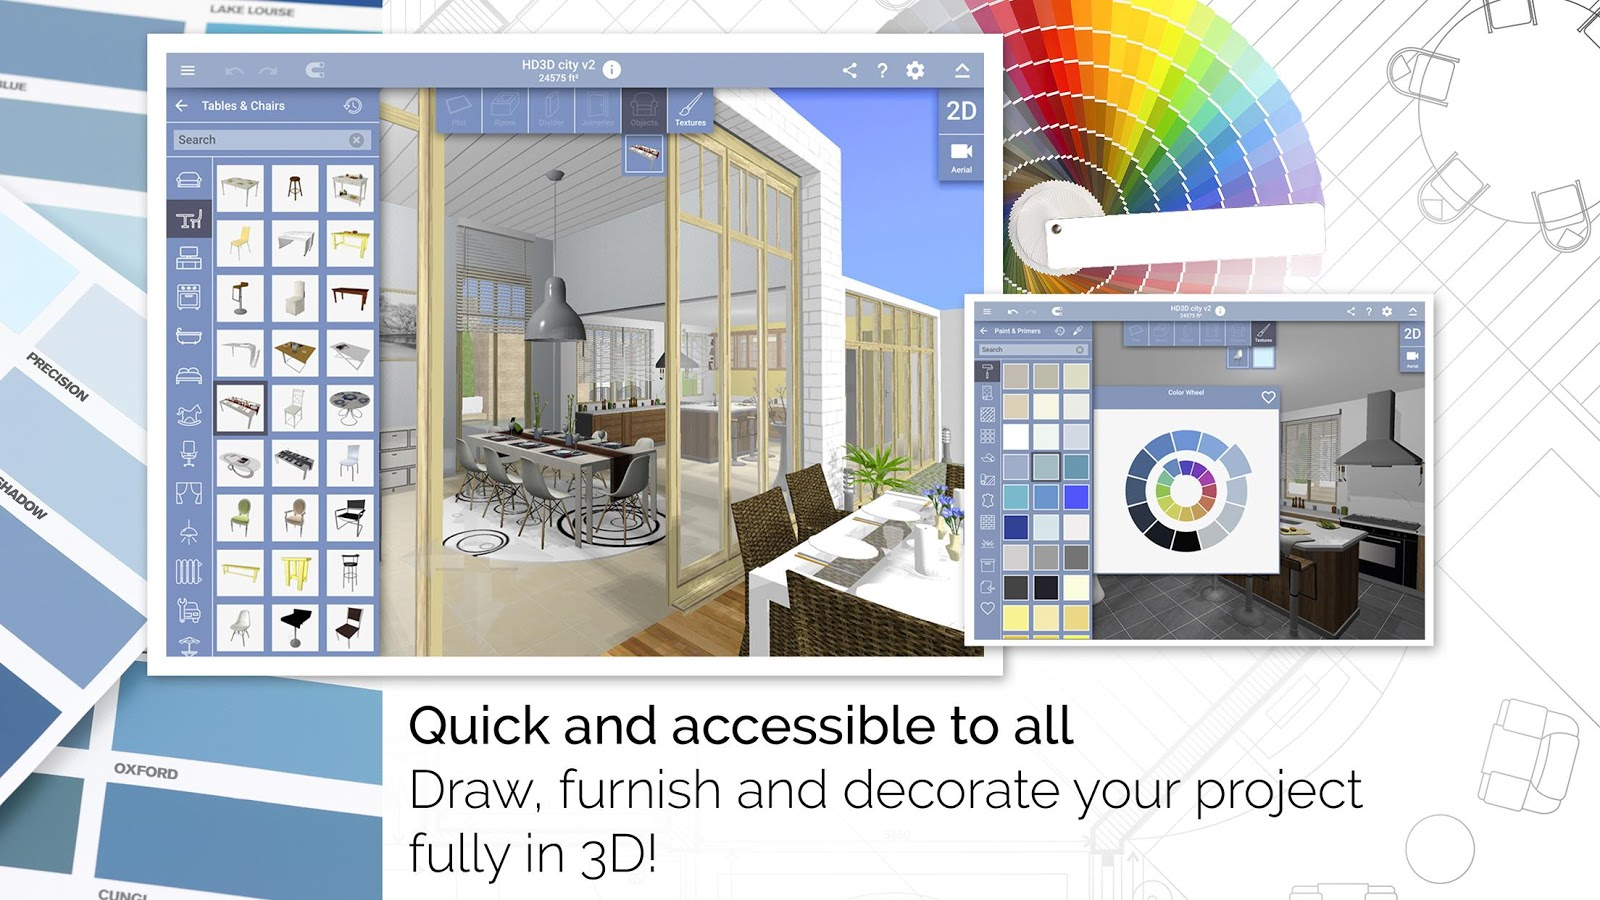 home design 3d freemium screenshot free home design app for interior decorating and design